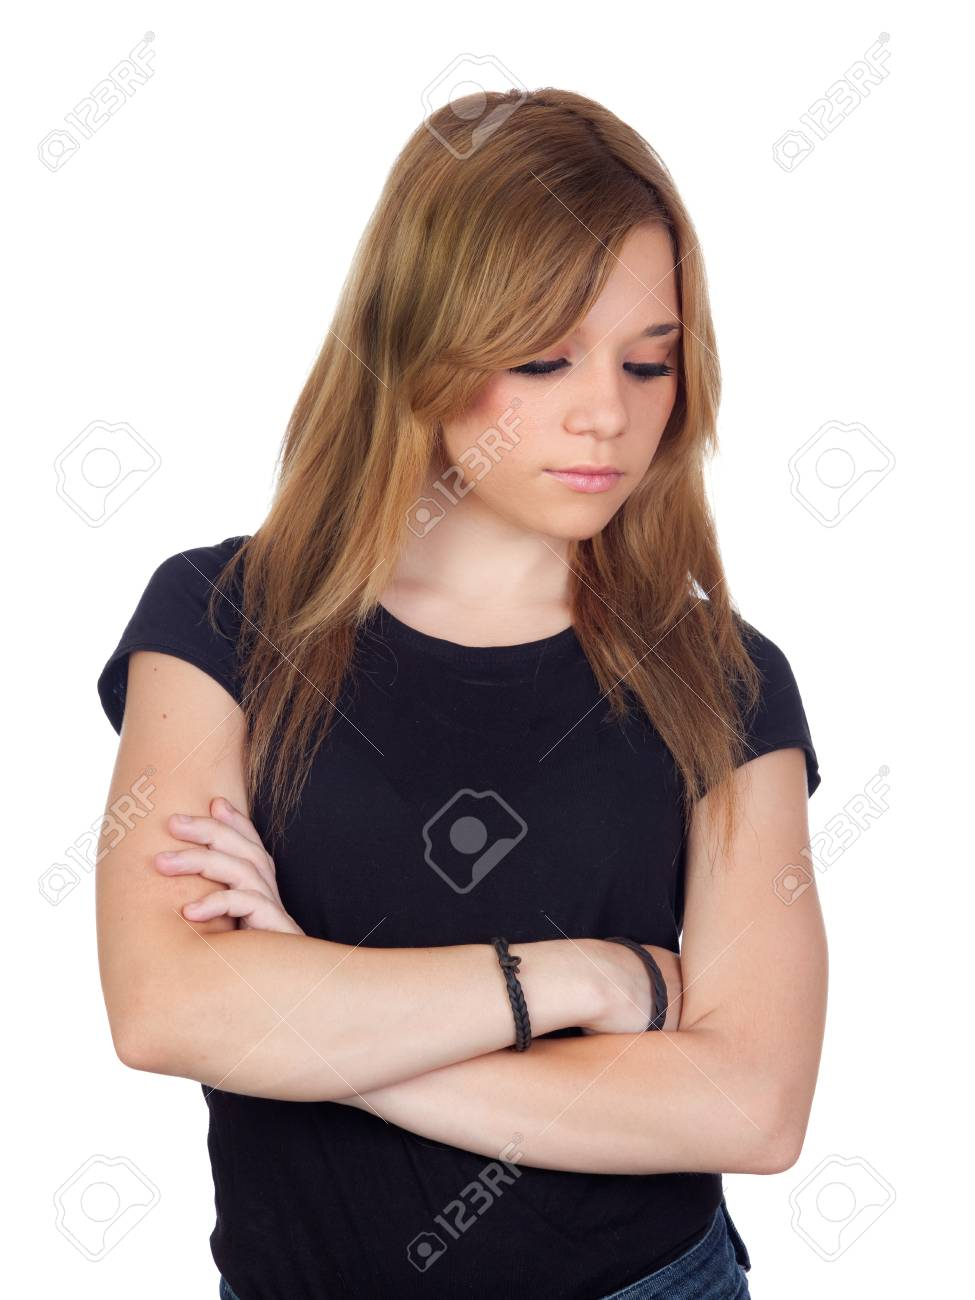 Attractive blond woman with black shirt saddened isolated on white background Stock Photo - 15968907